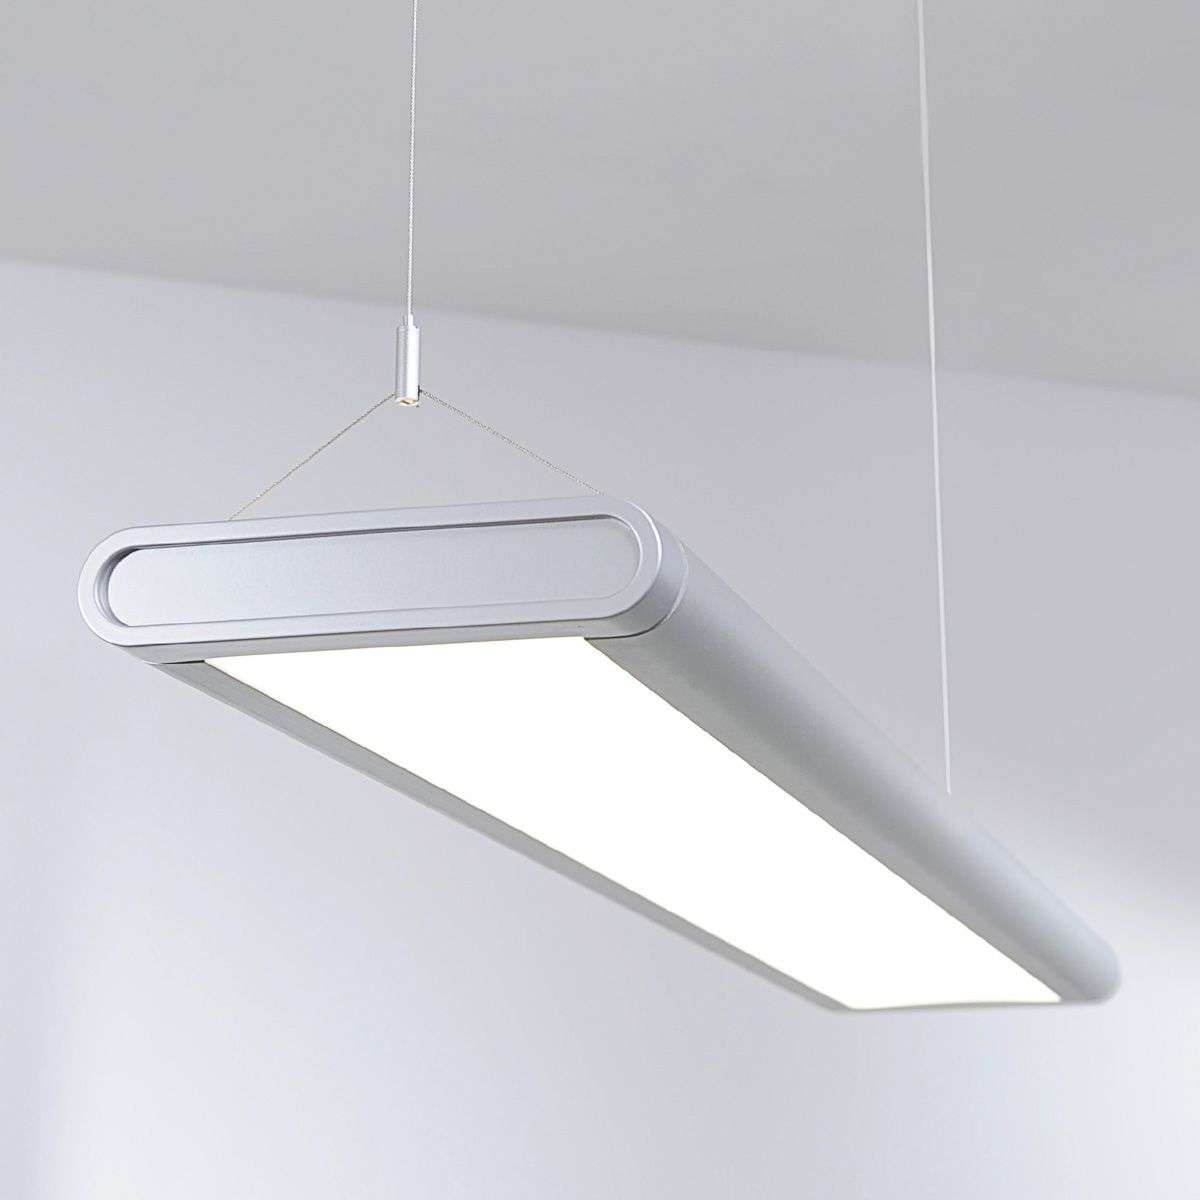 Office pendant light quirin with bright leds lights office pendant light quirin with bright leds 9966003 33 mozeypictures Choice Image